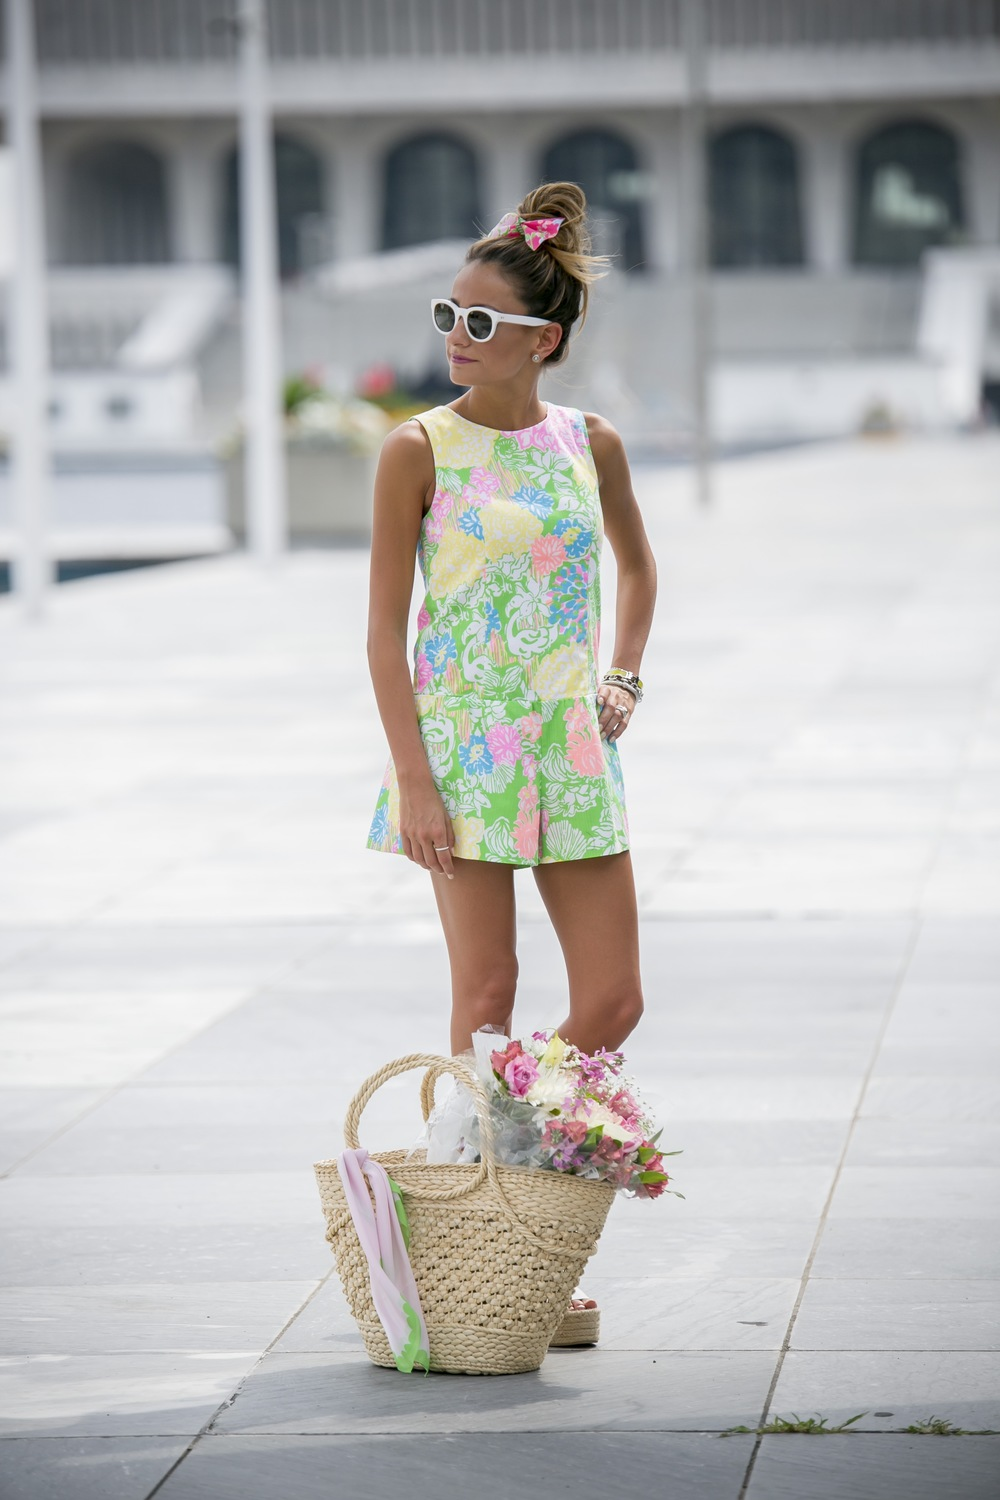 Lauren Recchia from the fashion blog north of manhattan in a Lilly Pulitzer romper